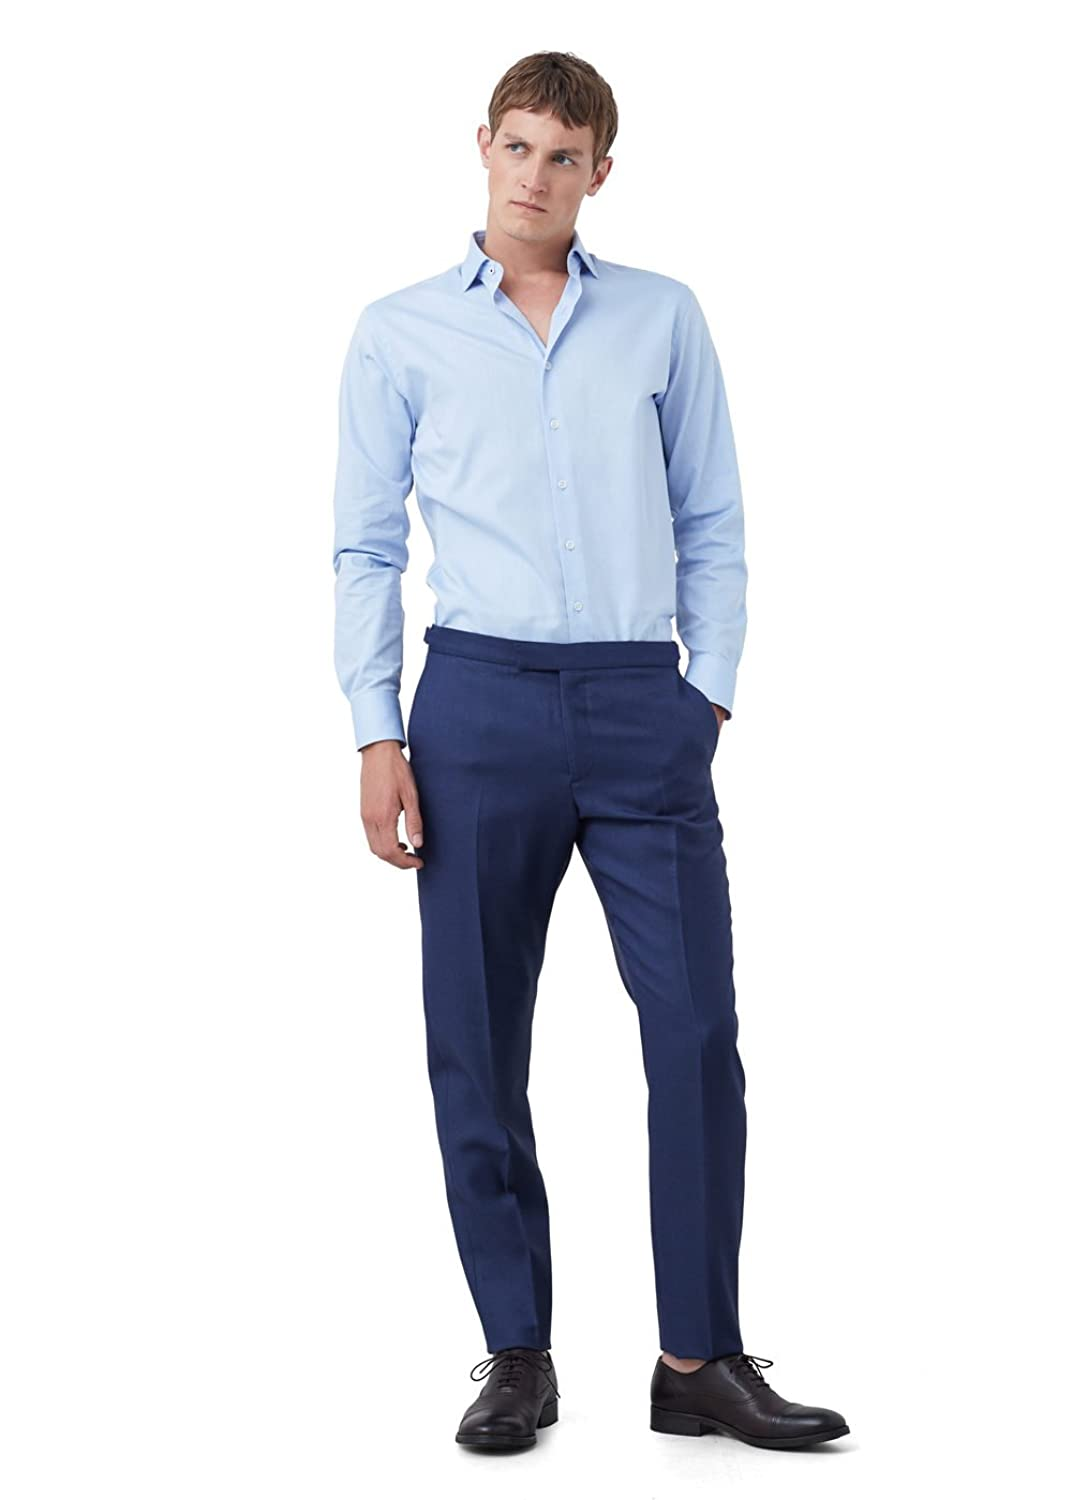 MANGO MAN - Slim-fit tailored textured Formal shirt - Size:XL - Color:Sky Blue